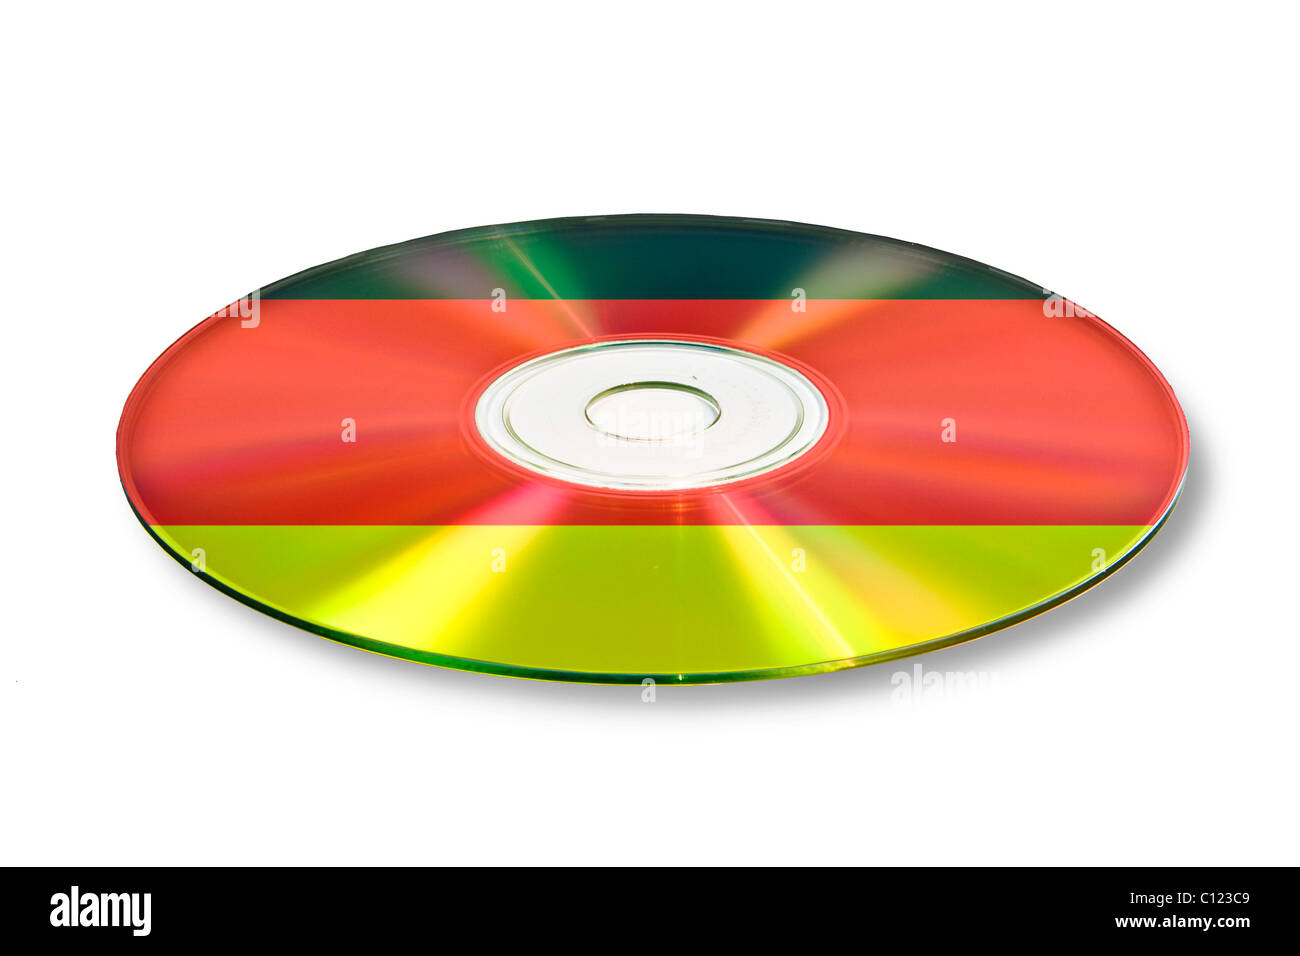 Data, account information, on CD, DVD, Germany - Stock Image